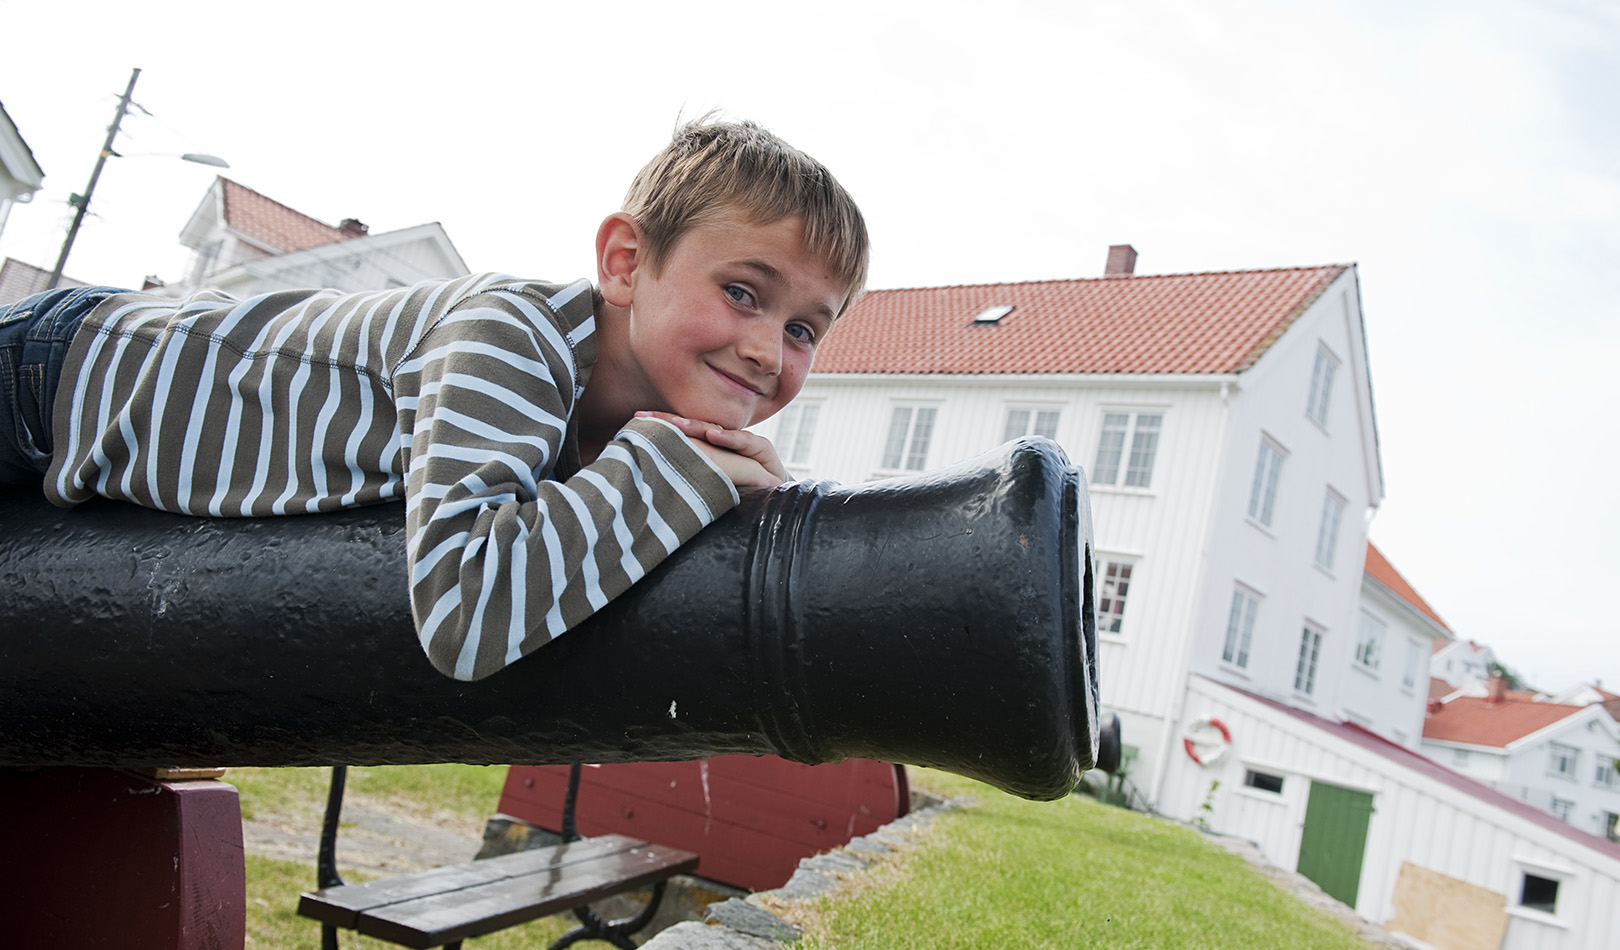 Boy lying on a canon with white buildings in the background, Risør, Sørlandet.